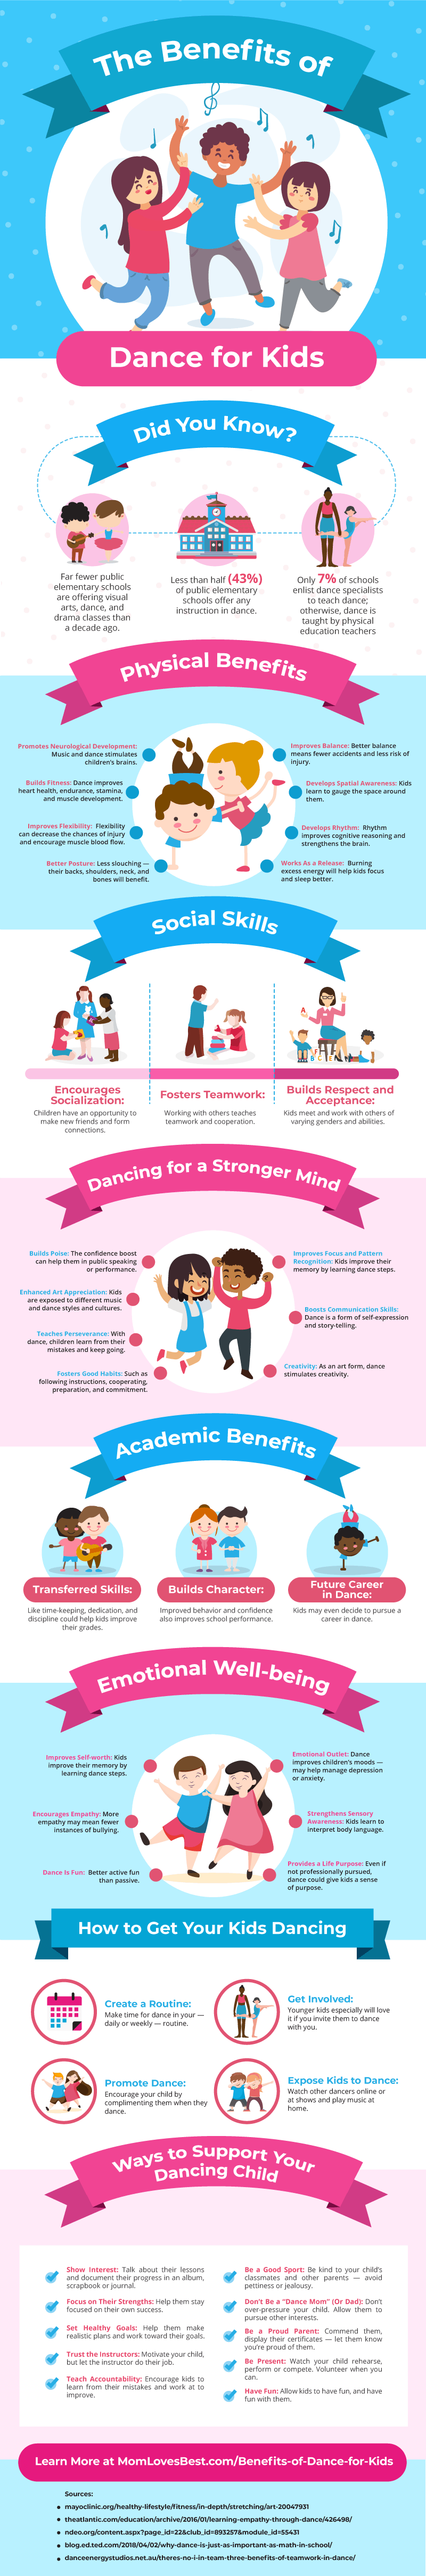 Benefits of Dance for Kids Infographic